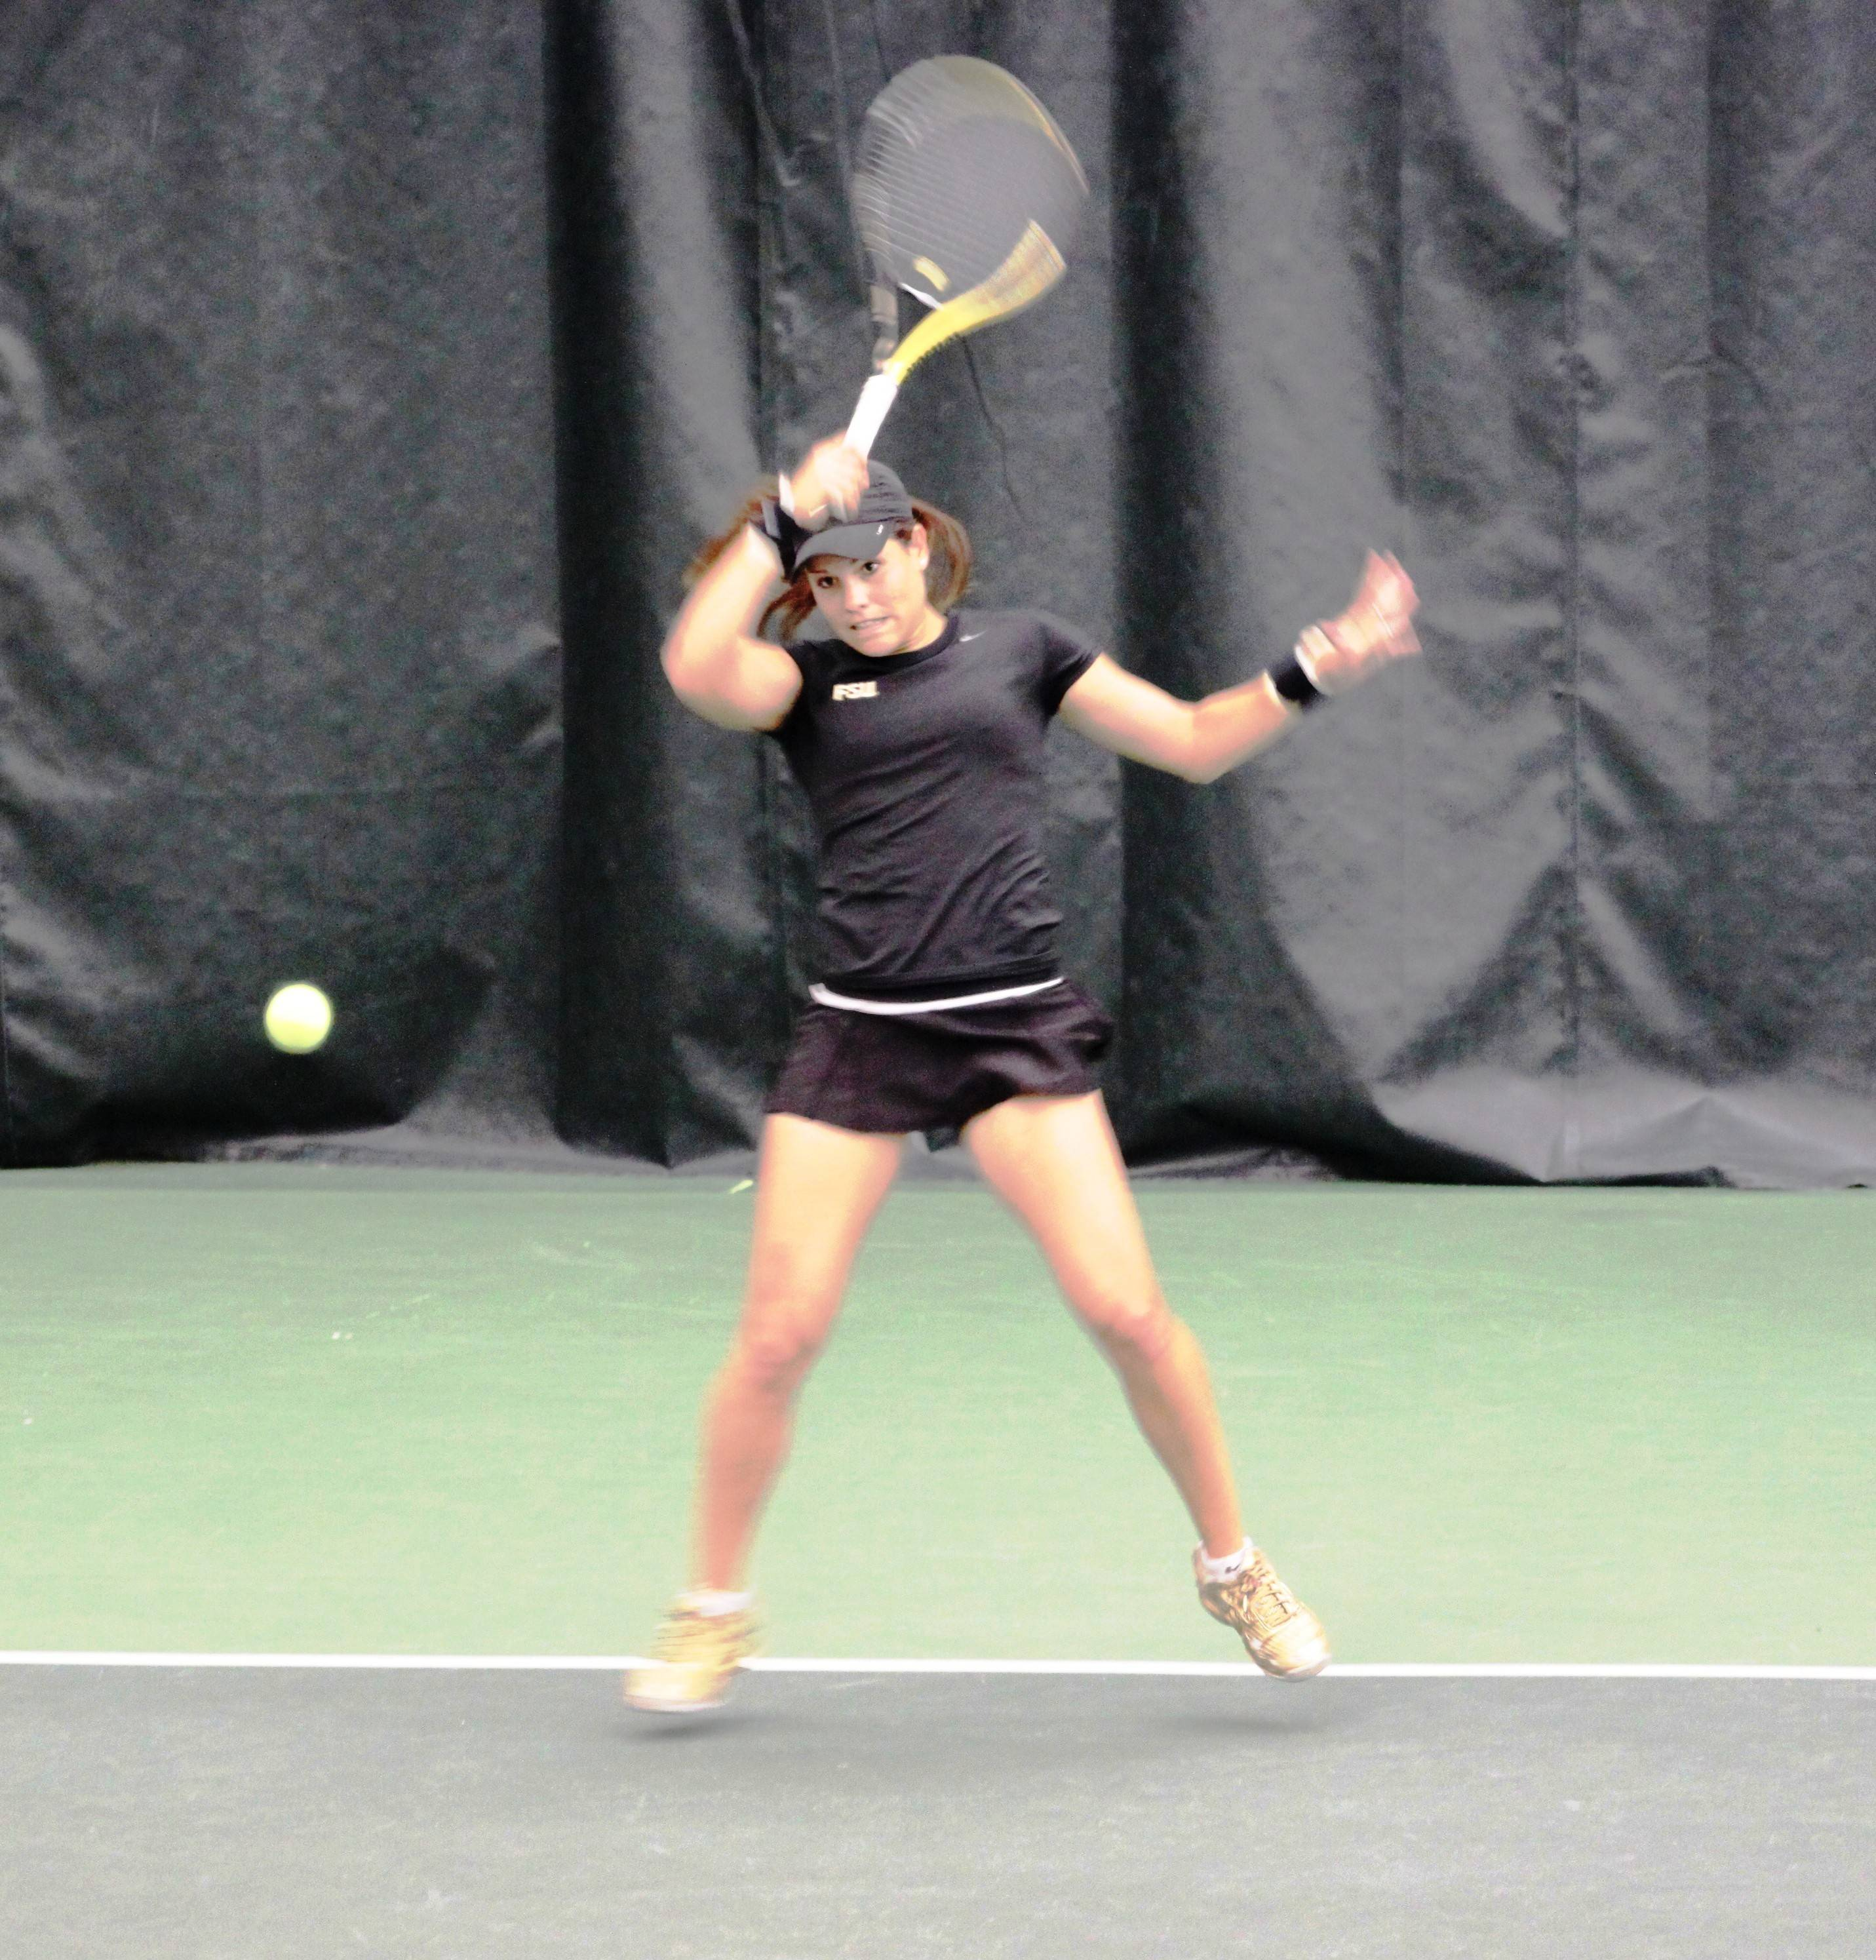 Noemie Scharle won the first point for the Seminoles.